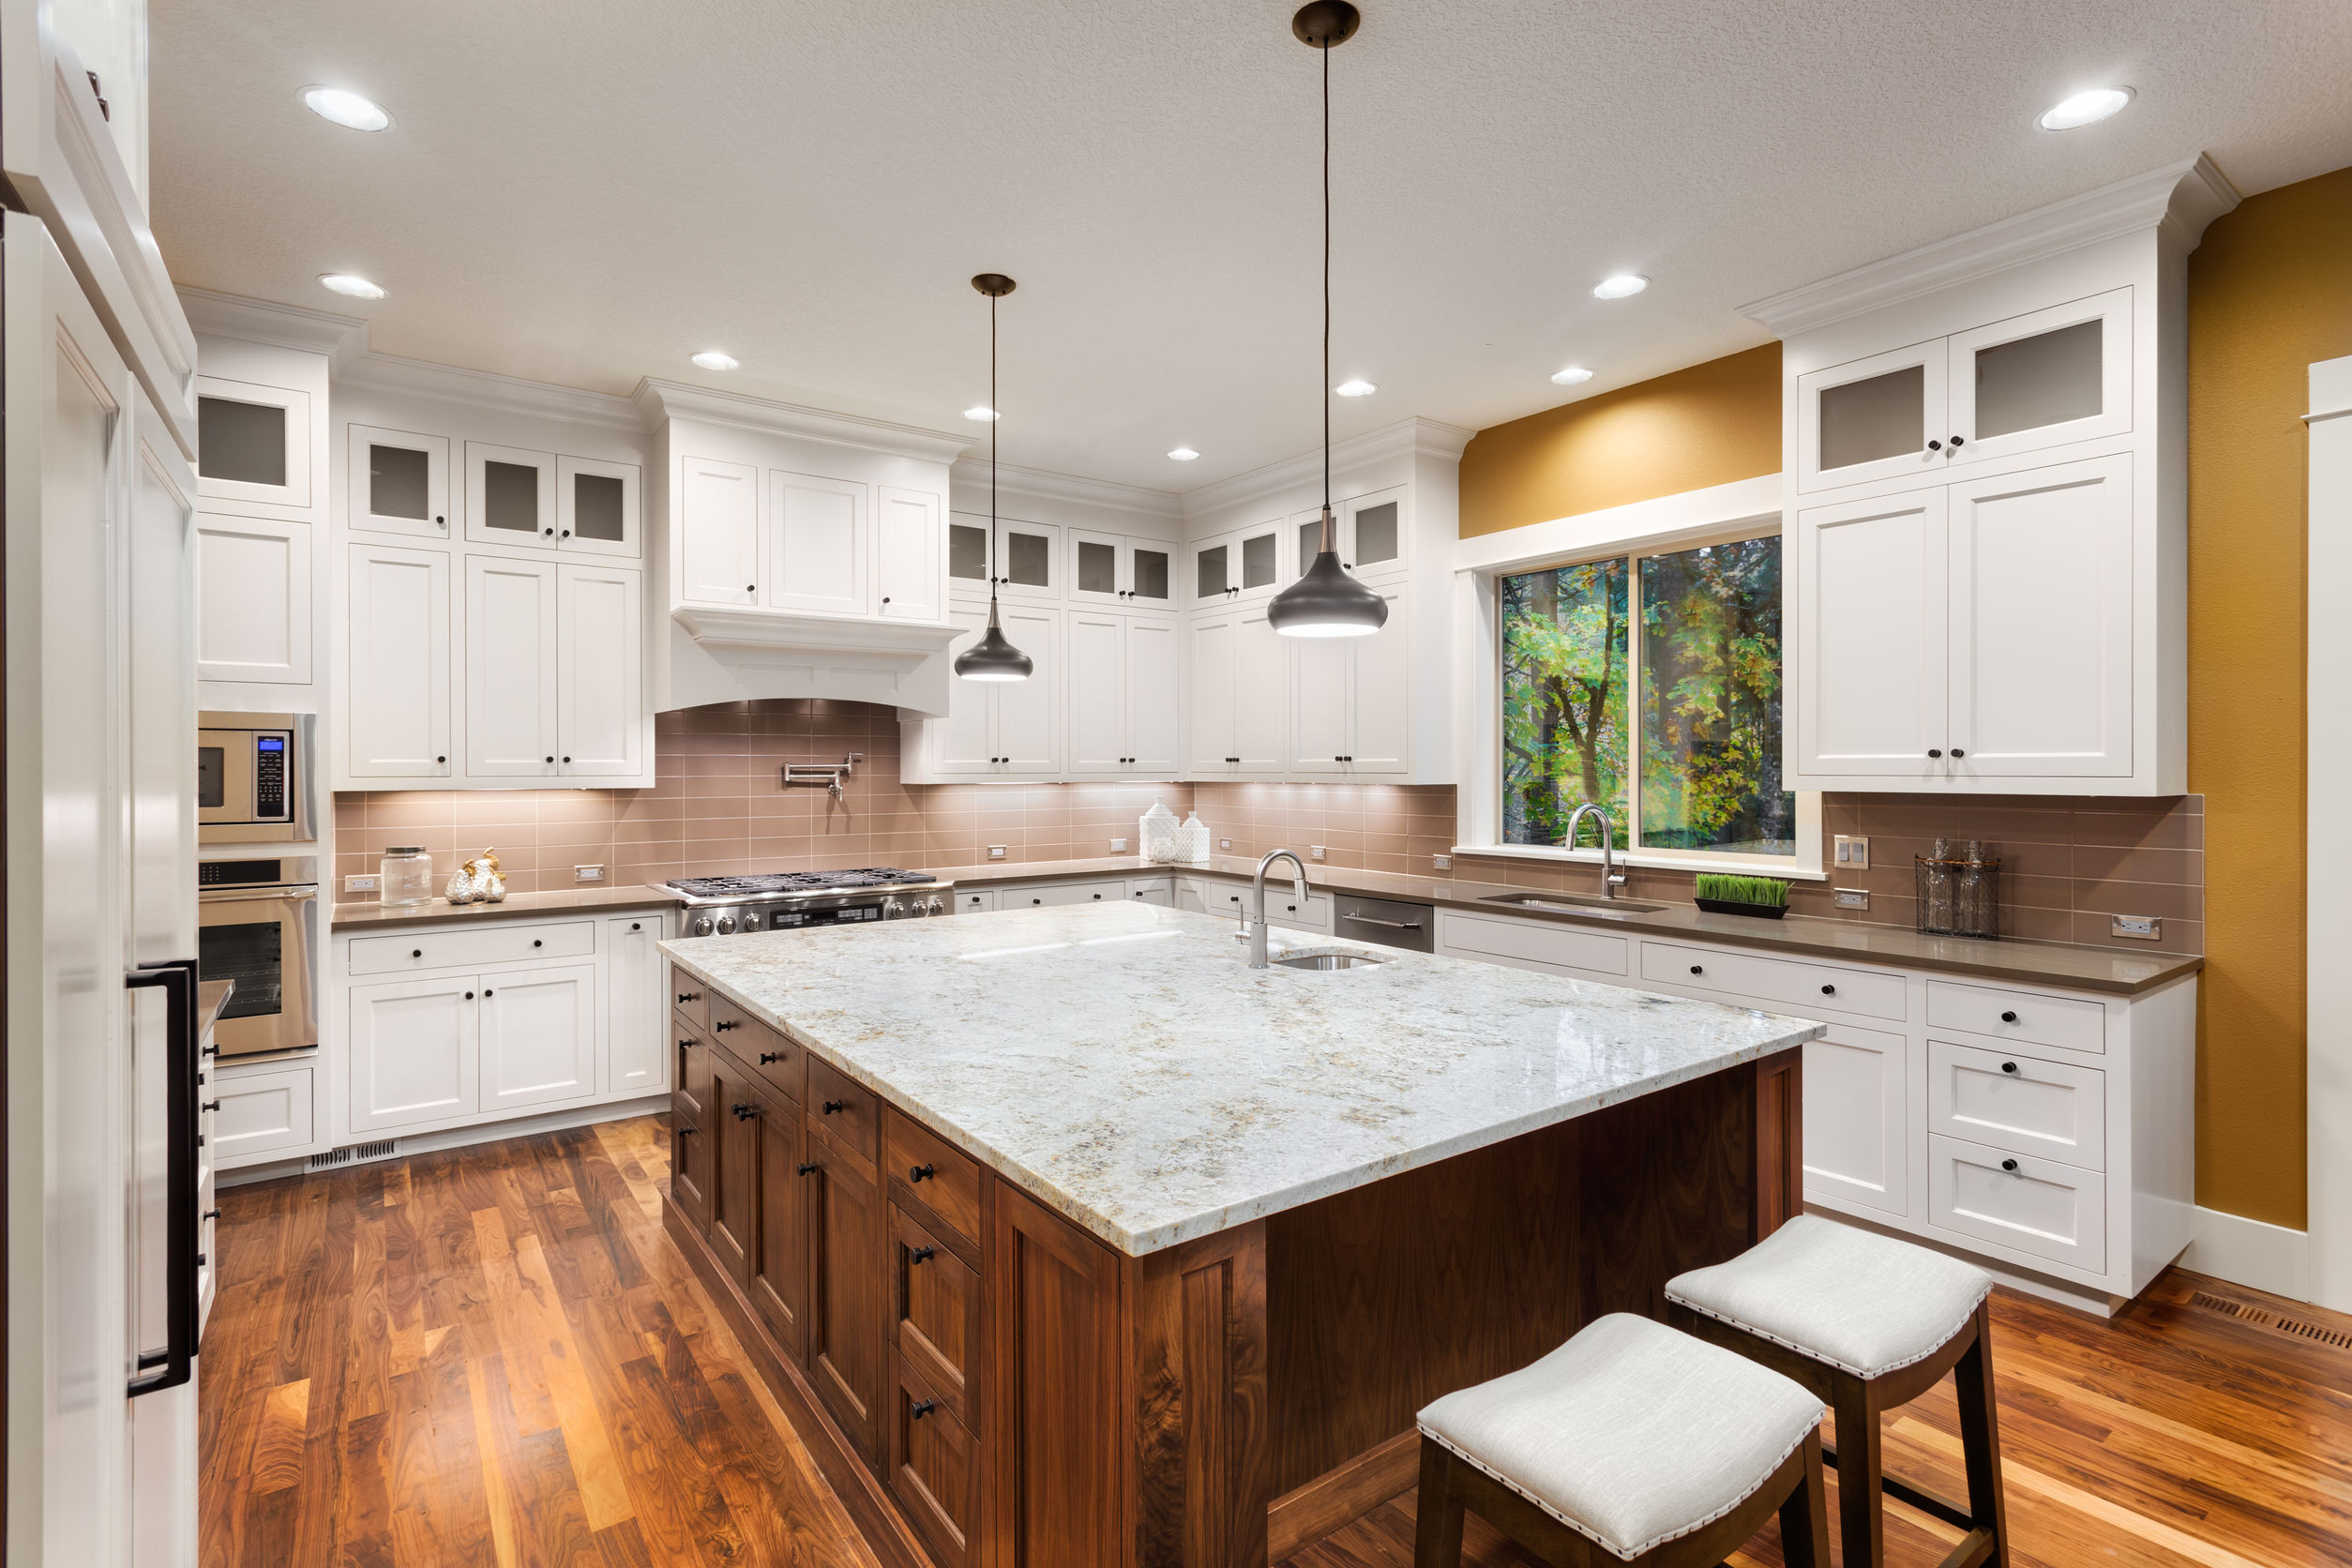 50834053 - large kitchen interior with island, sink, white cabinets, pendant lights, and hardwood floors in new luxury home